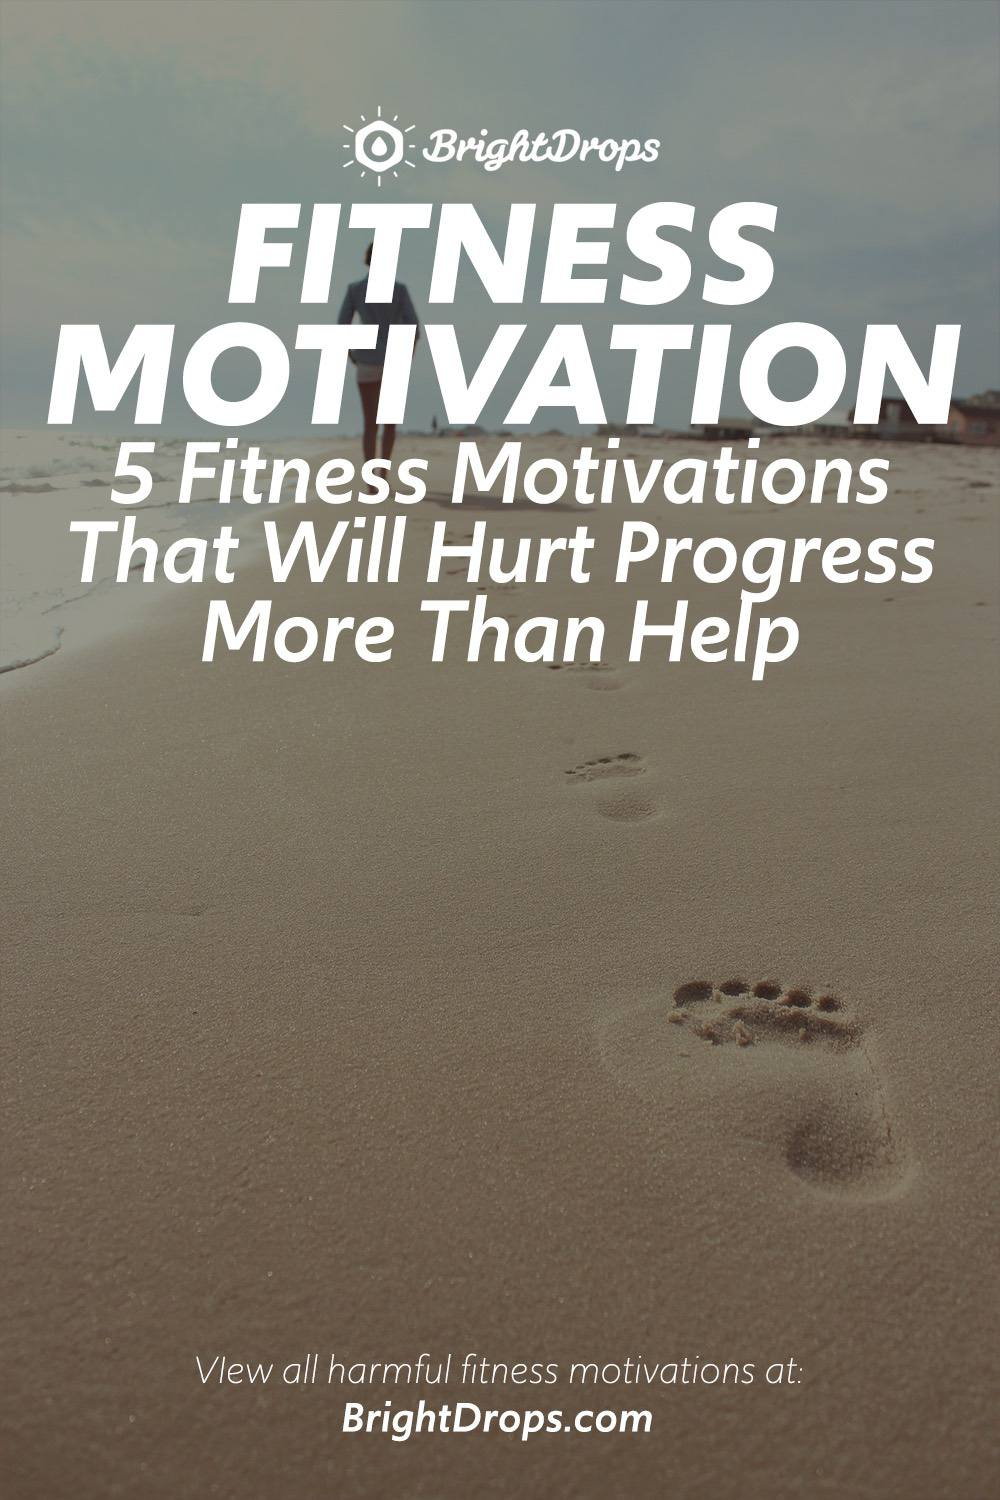 5 Fitness Motivations That Will Hurt Progress More Than Help